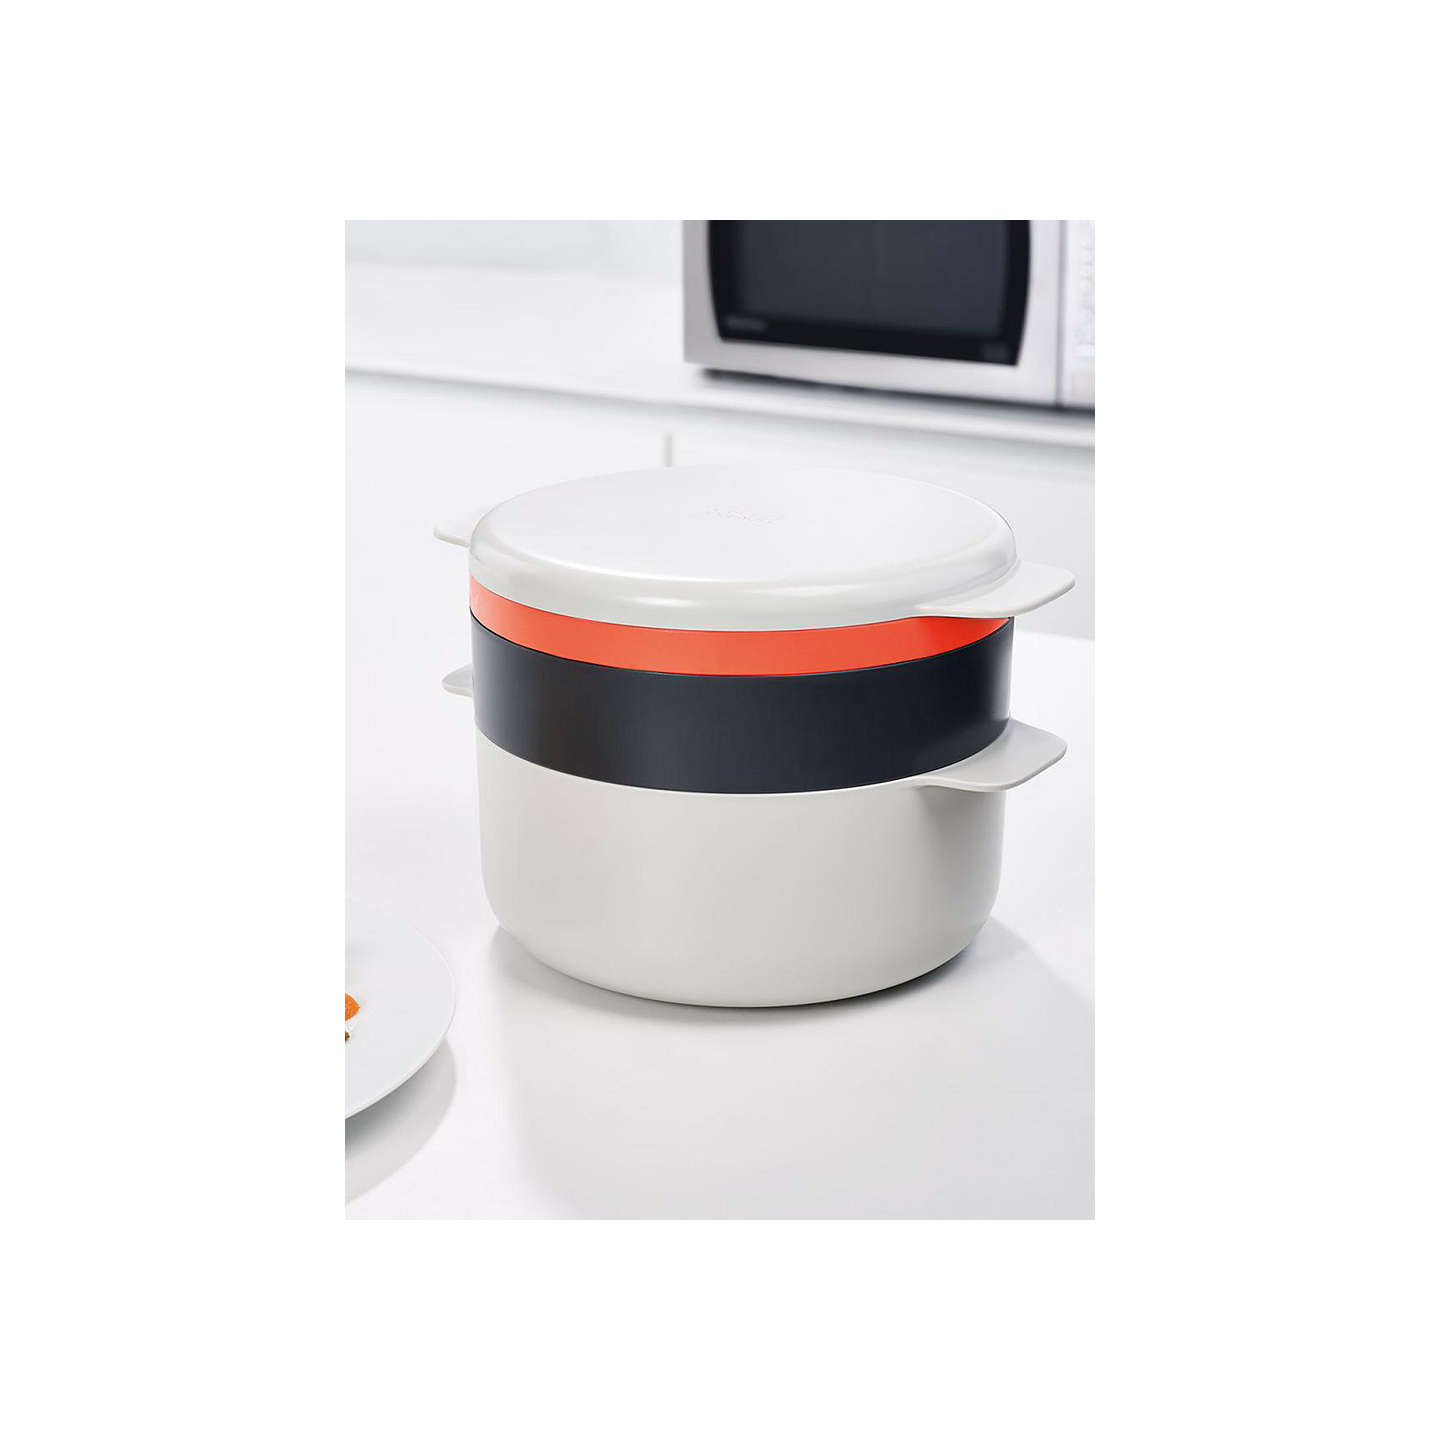 joseph joseph m cuisine 4 piece stackable cooking set at john lewis. Black Bedroom Furniture Sets. Home Design Ideas